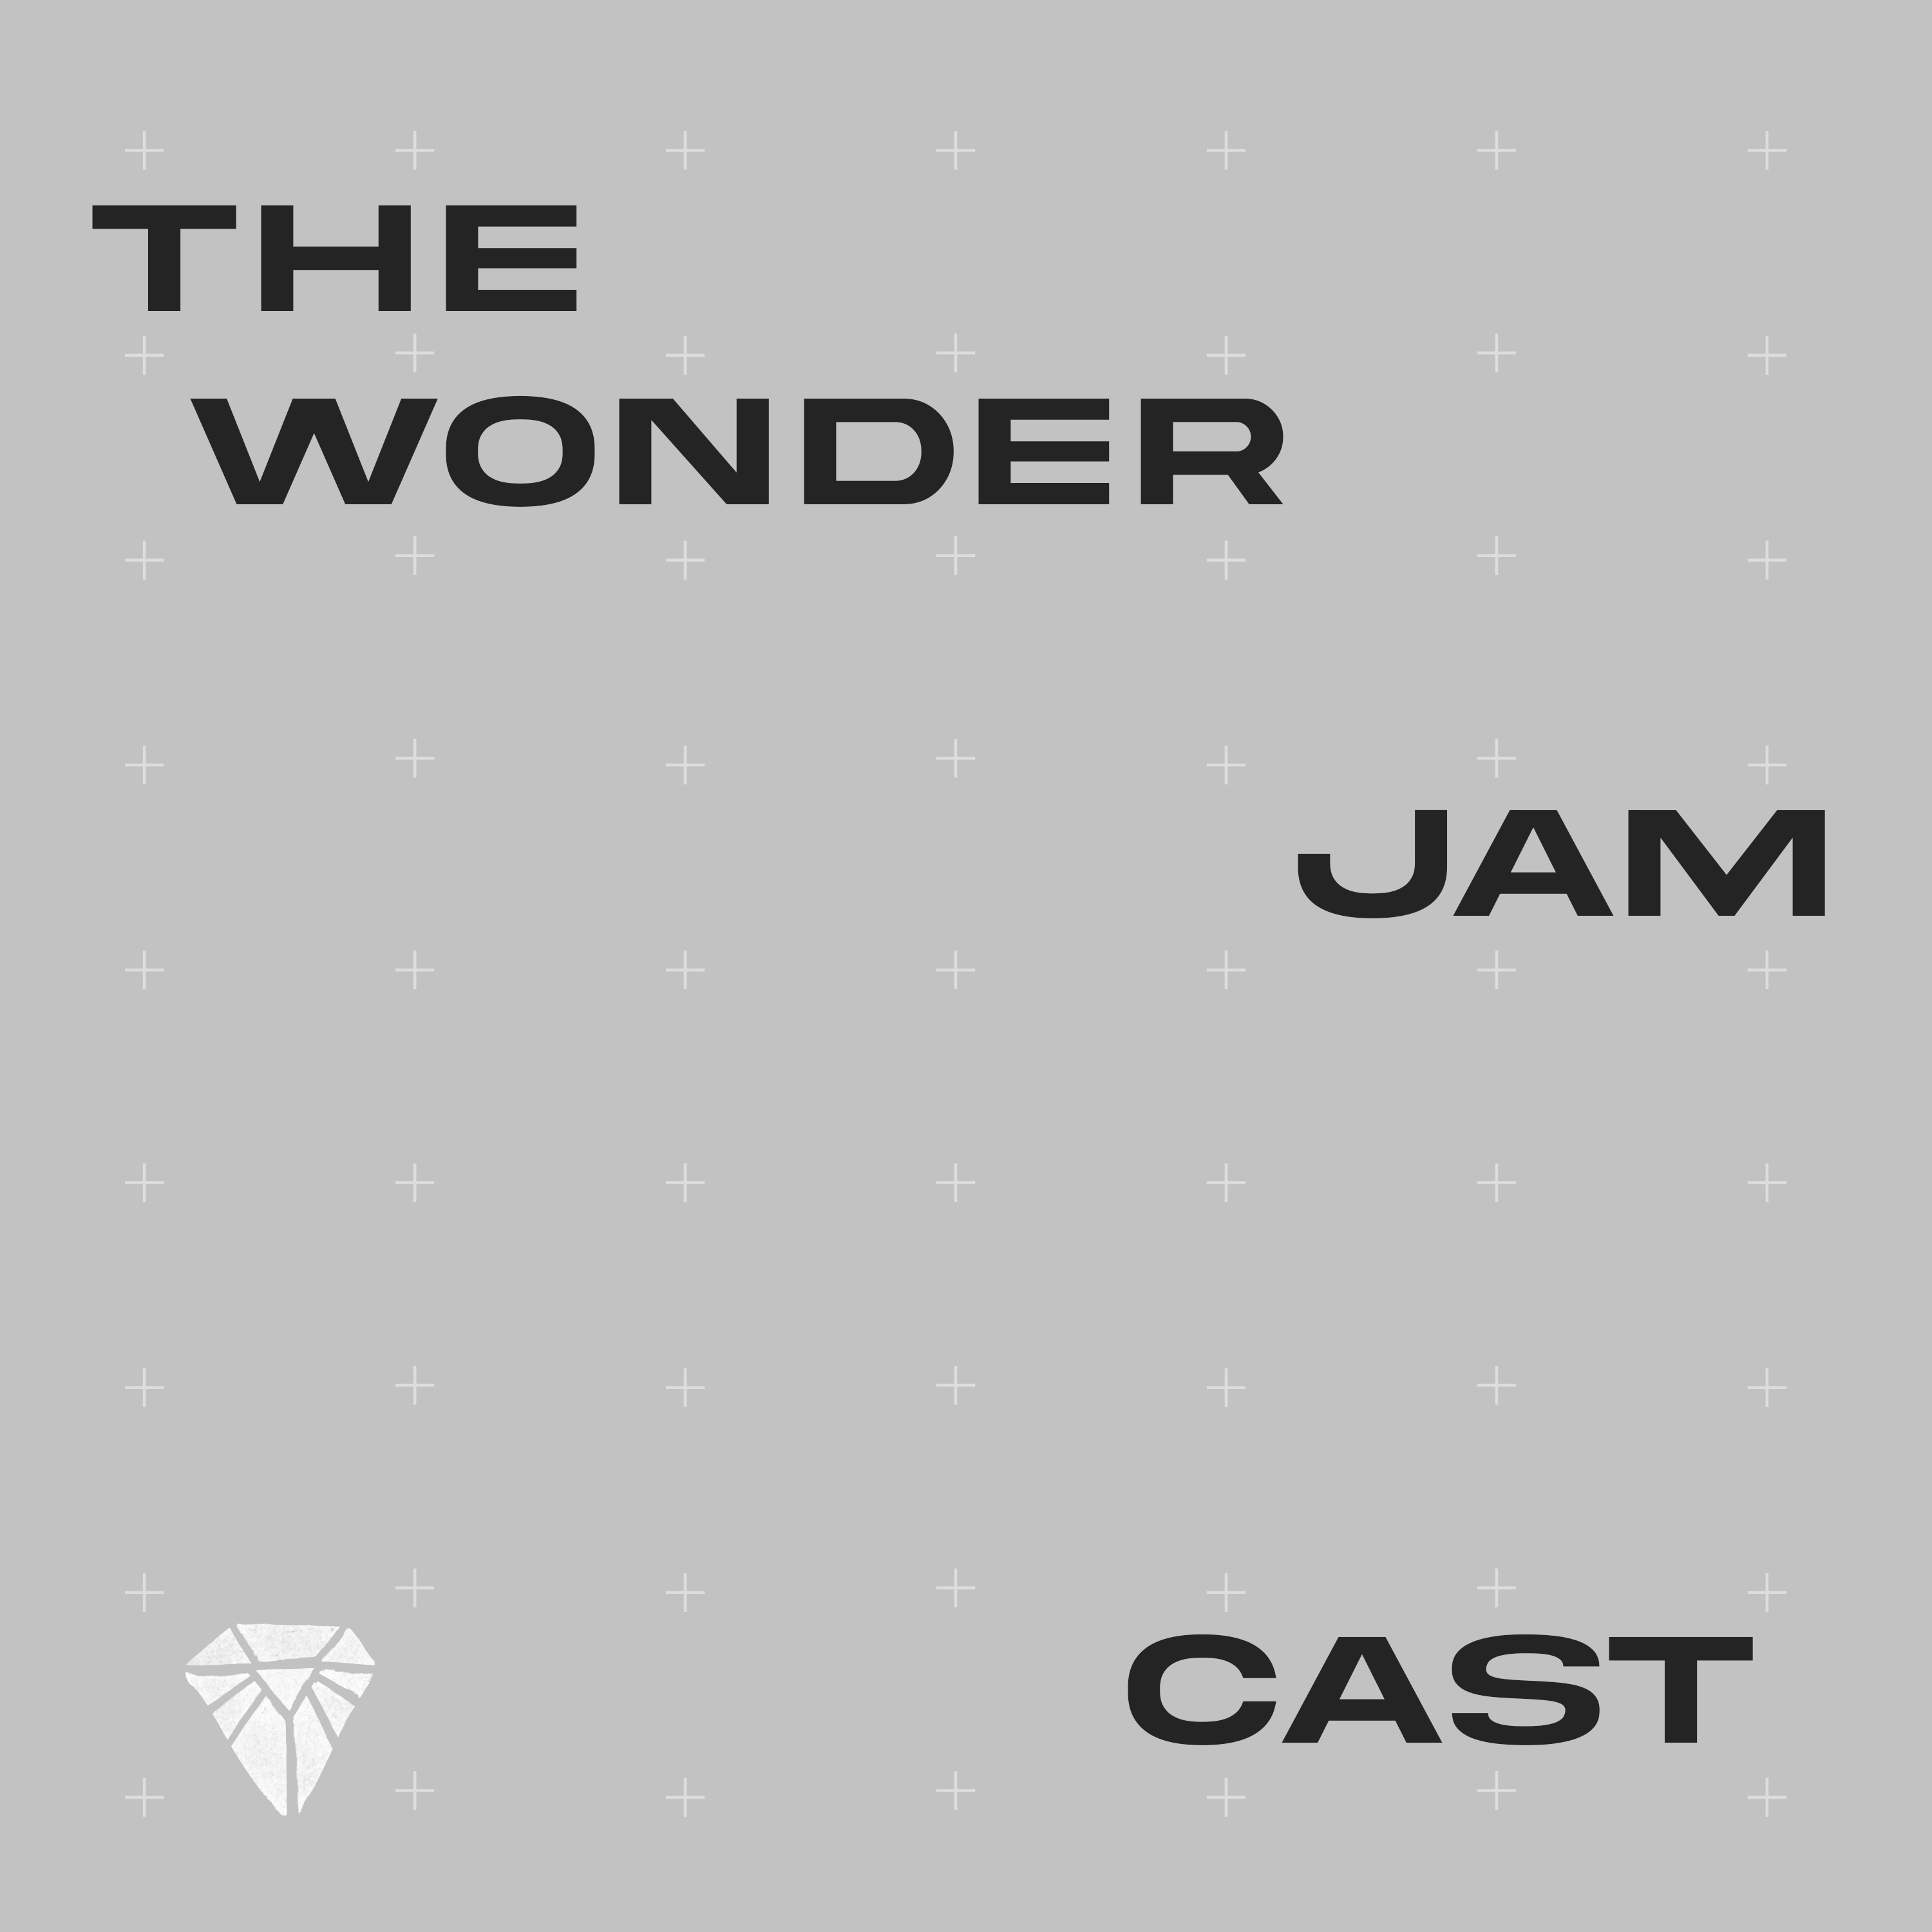 The Wonder Jam Cast show art